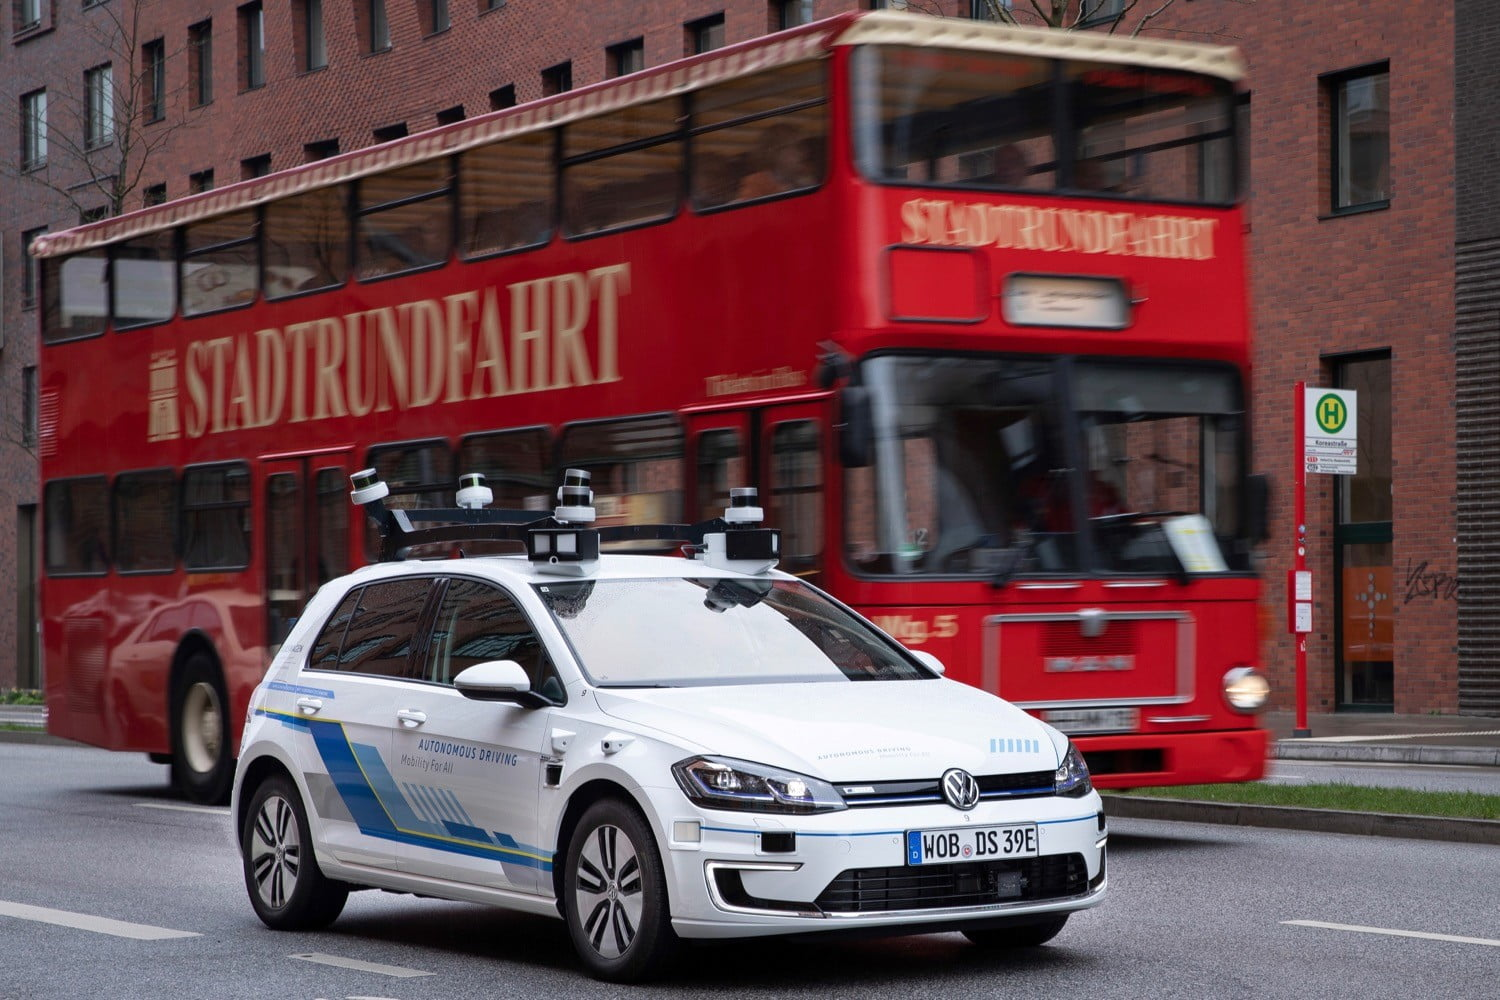 Volkswagen Tests Self-Driving Cars on Public Streets in